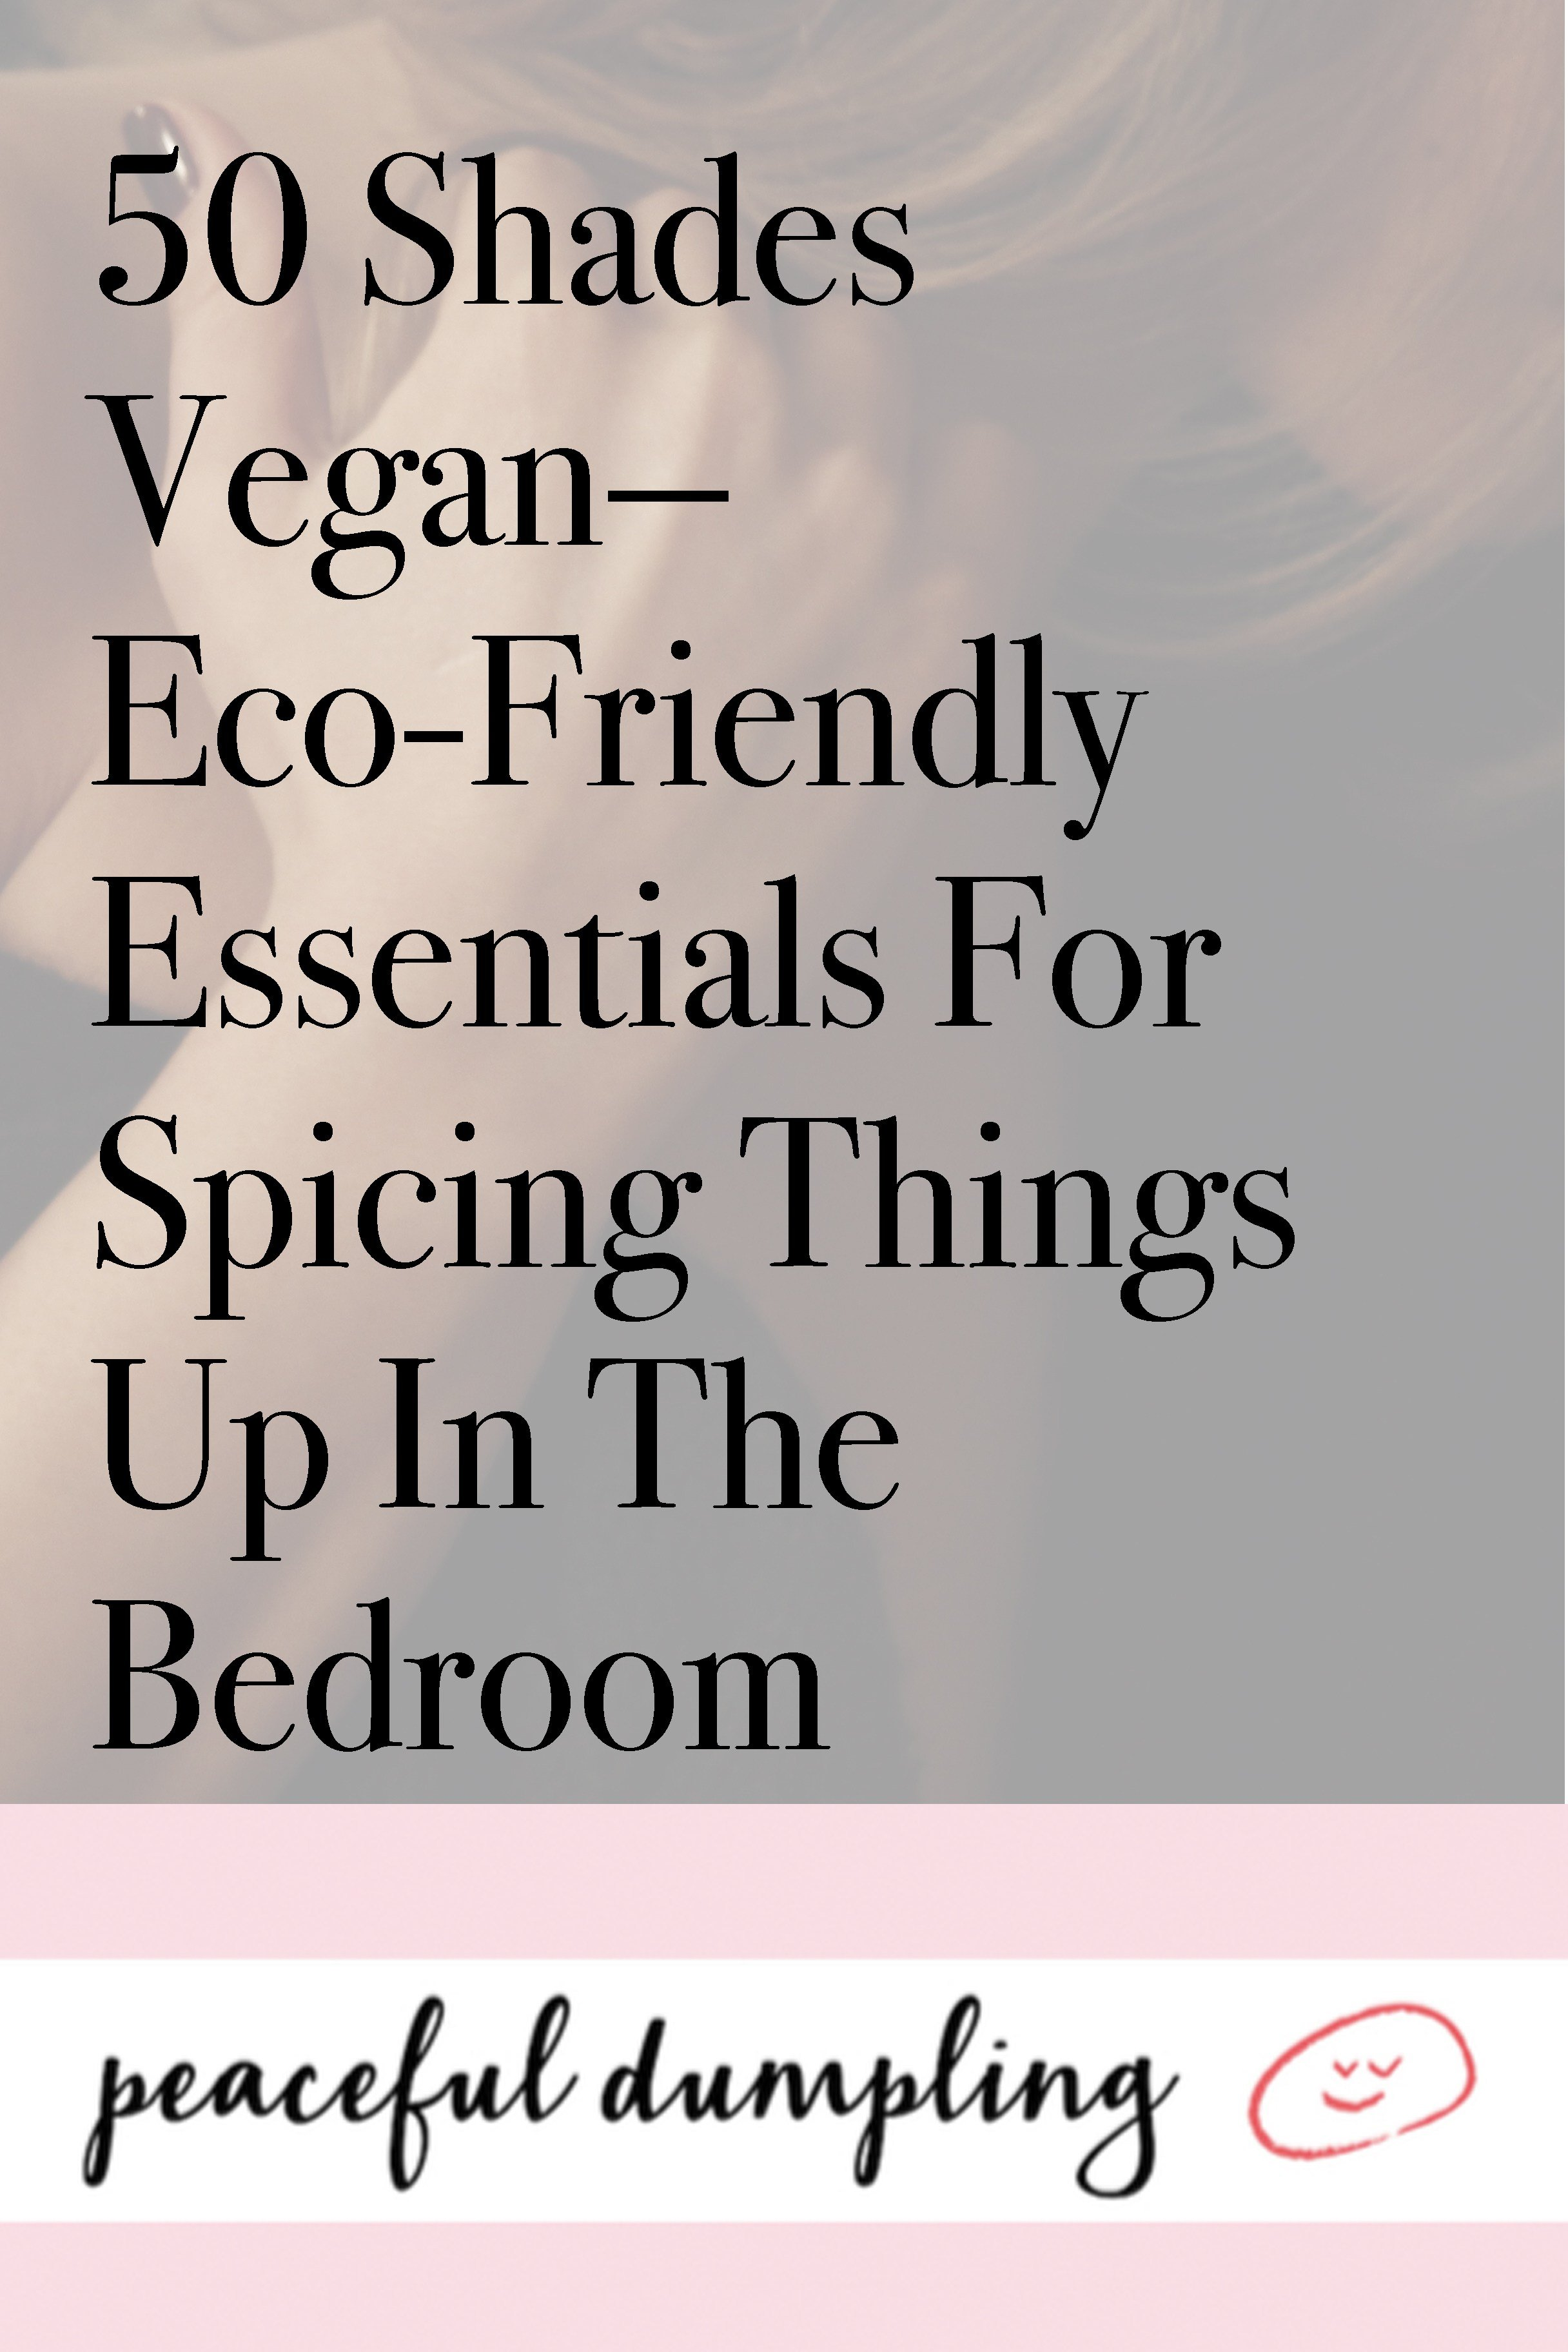 Best 50 Shades Vegan—Eco Friendly Essentials For Spicing Things With Pictures